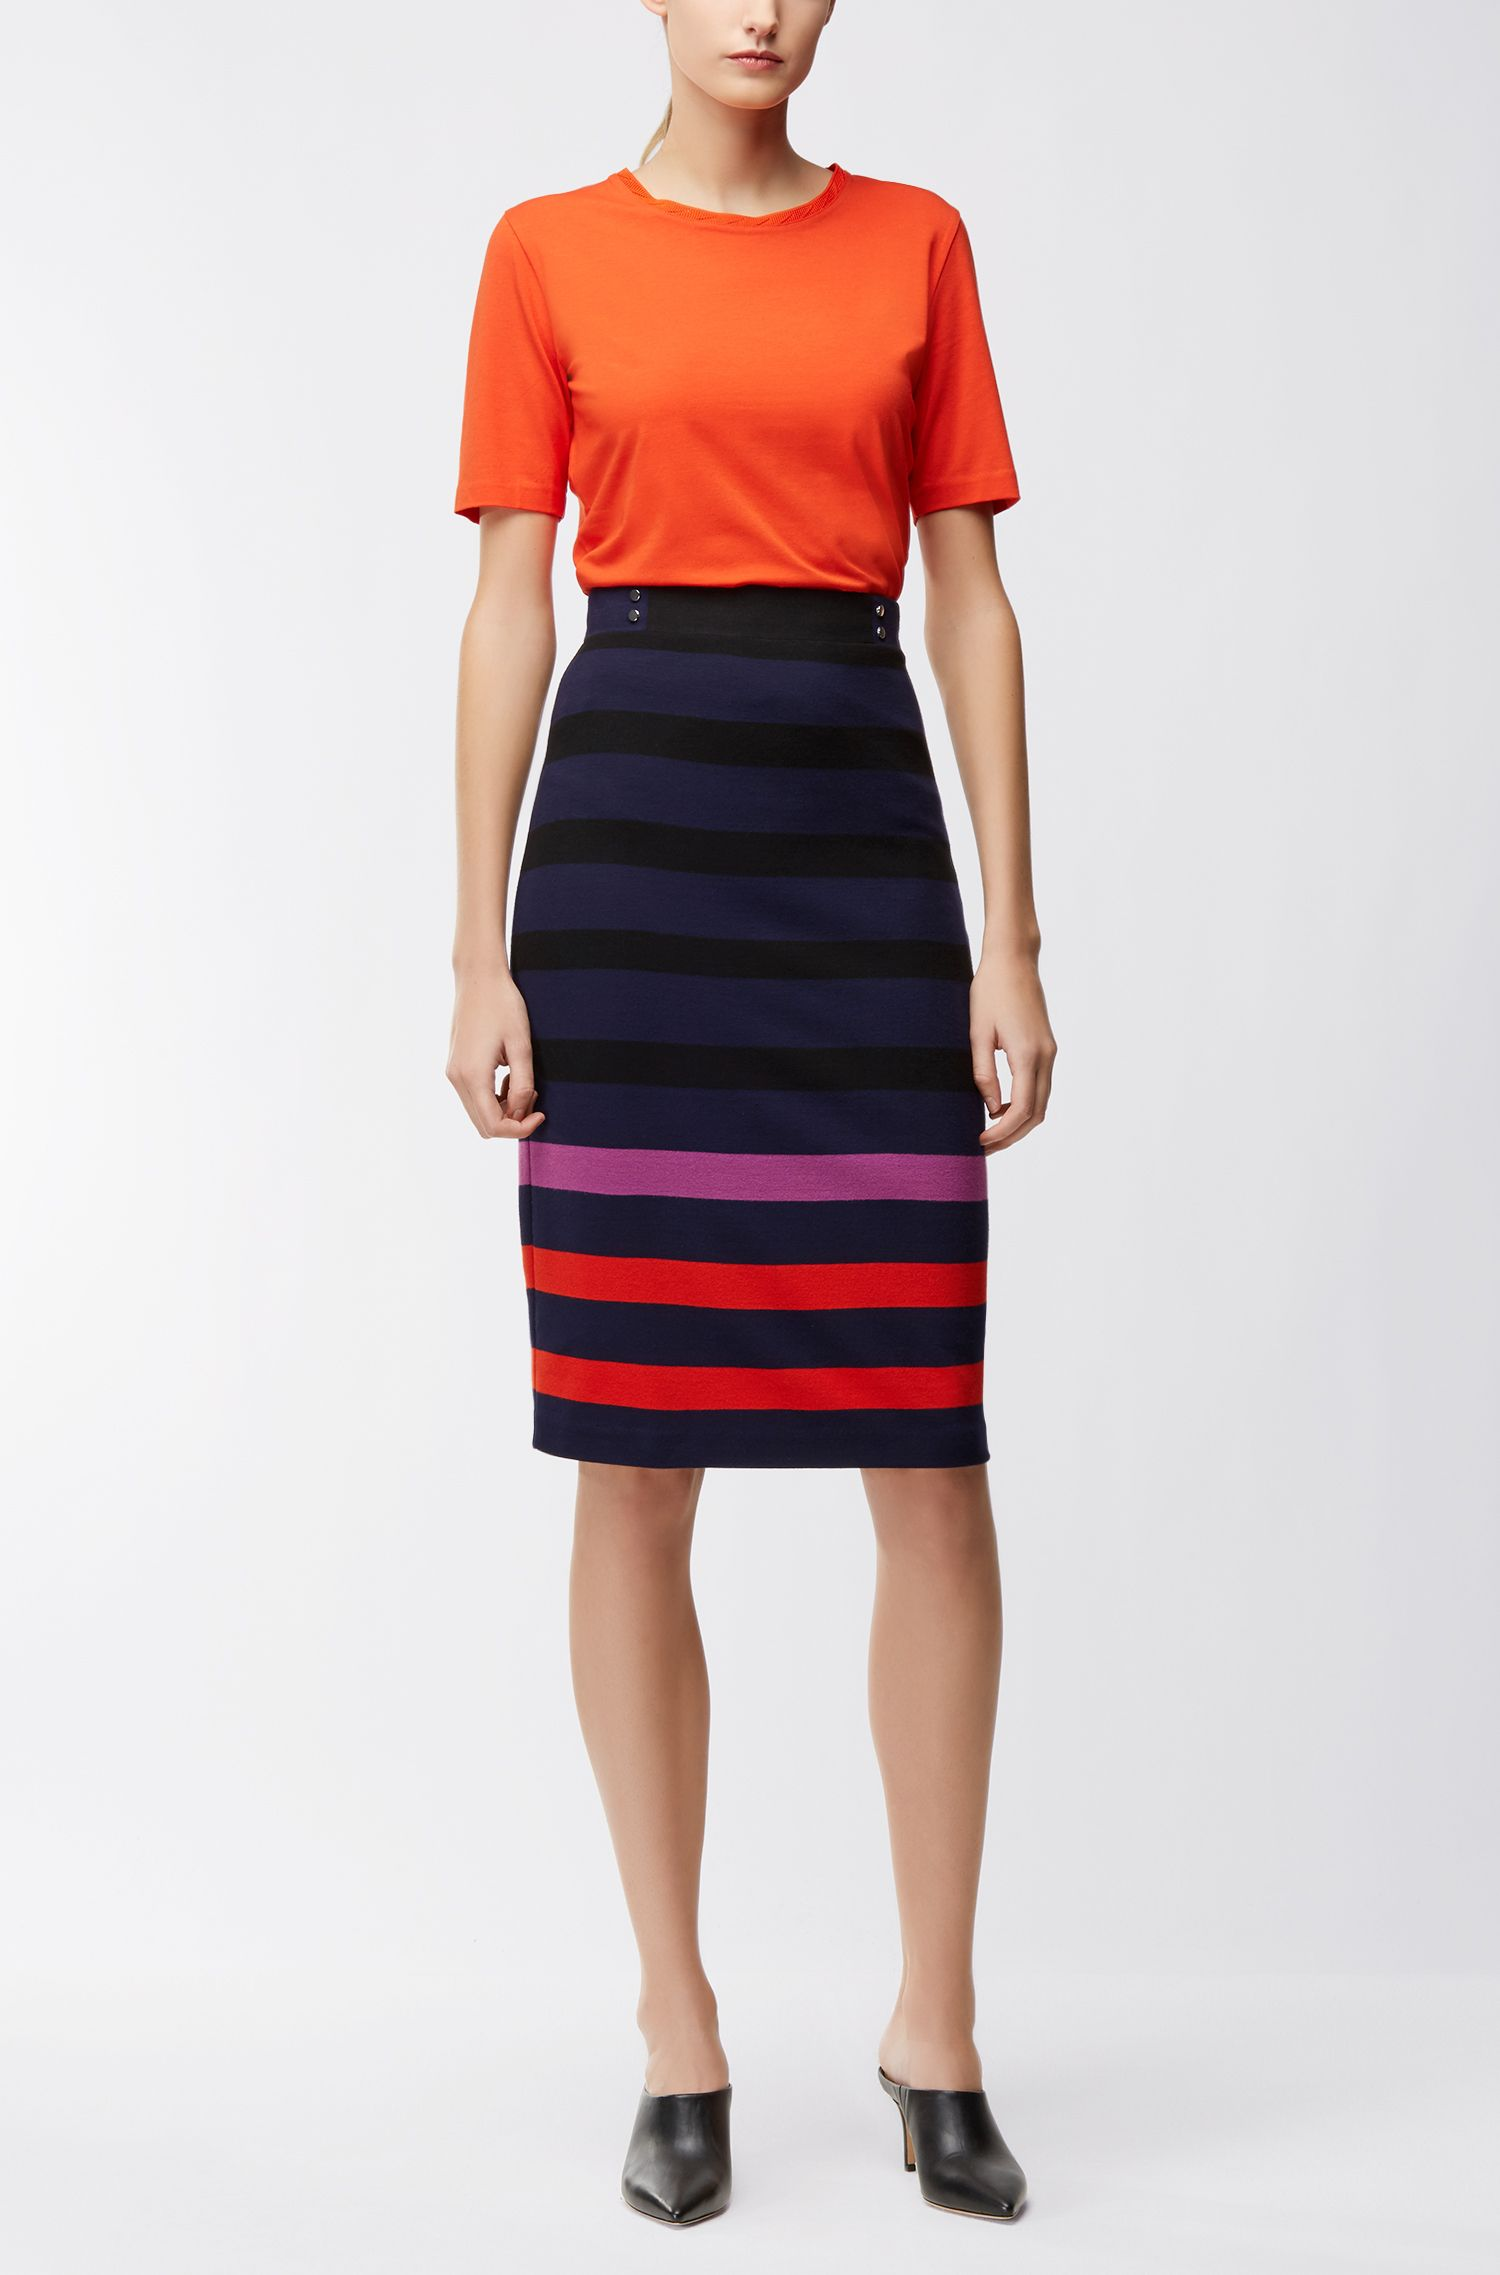 Multi-coloured stripe pencil skirt in interlock jersey